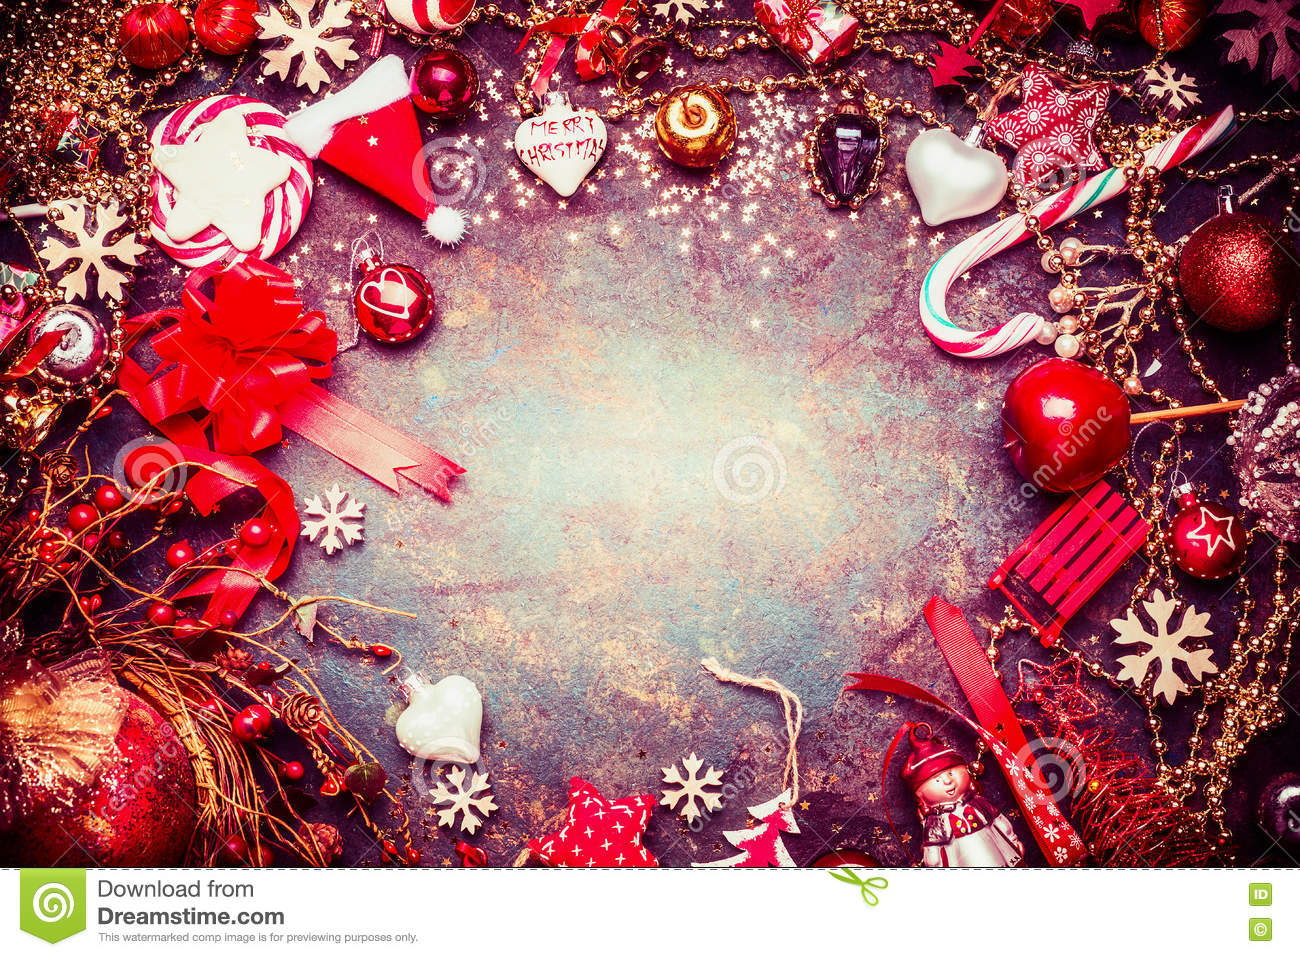 Red blue Christmas frame with various vintage holiday decorations and candy on rustic background